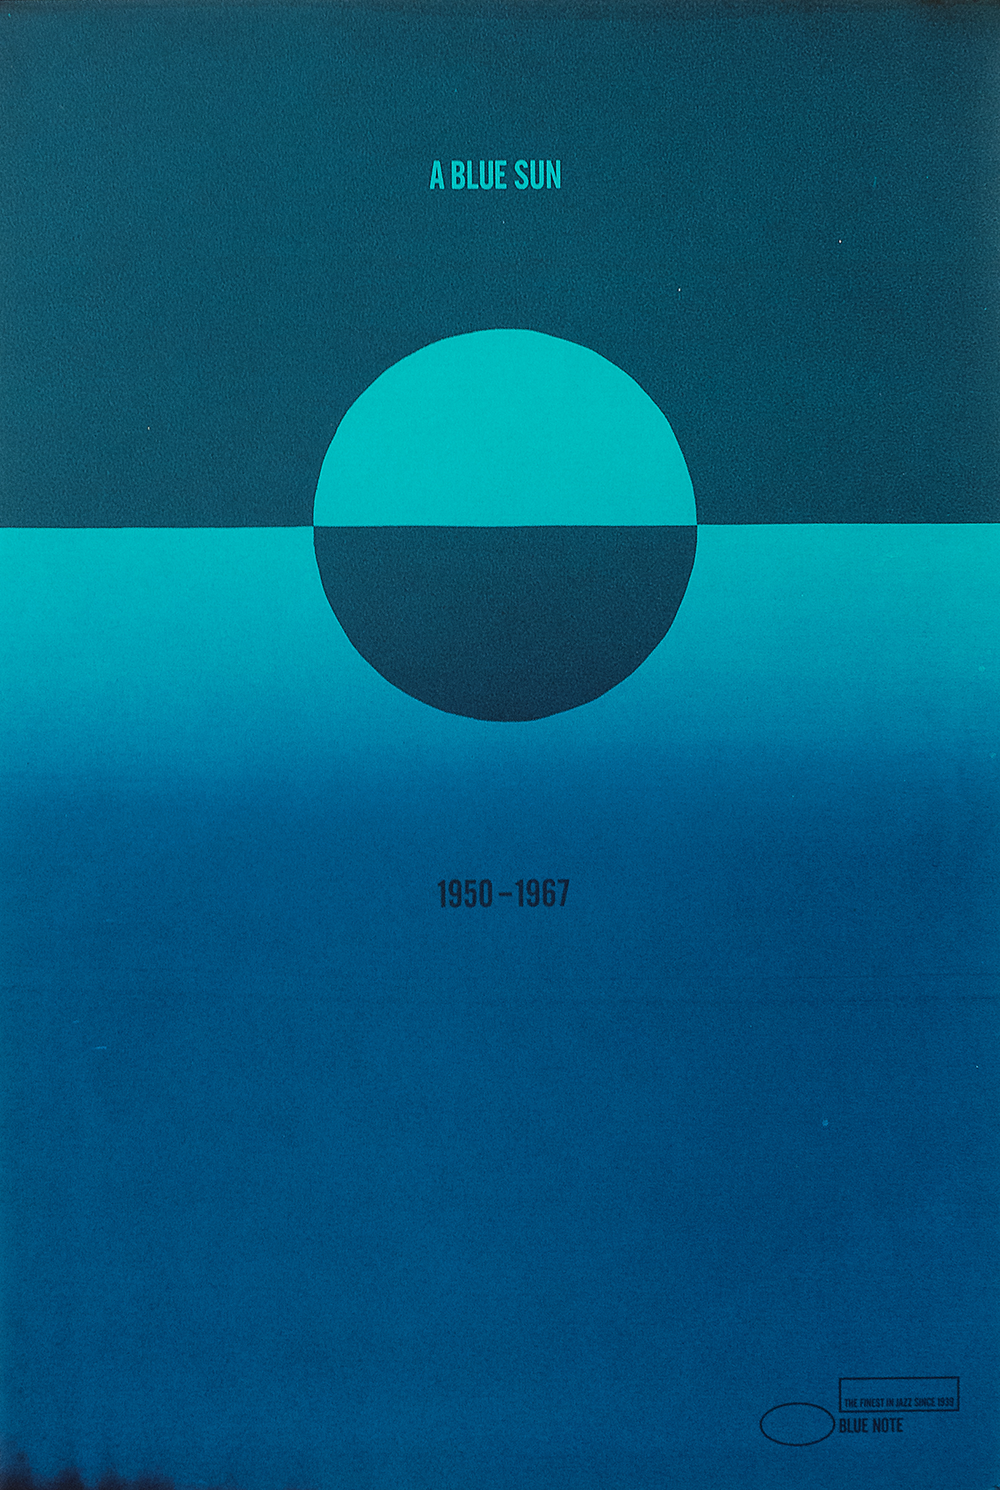 carin-nilsson_blue-note-a-blue-sun_f14.png